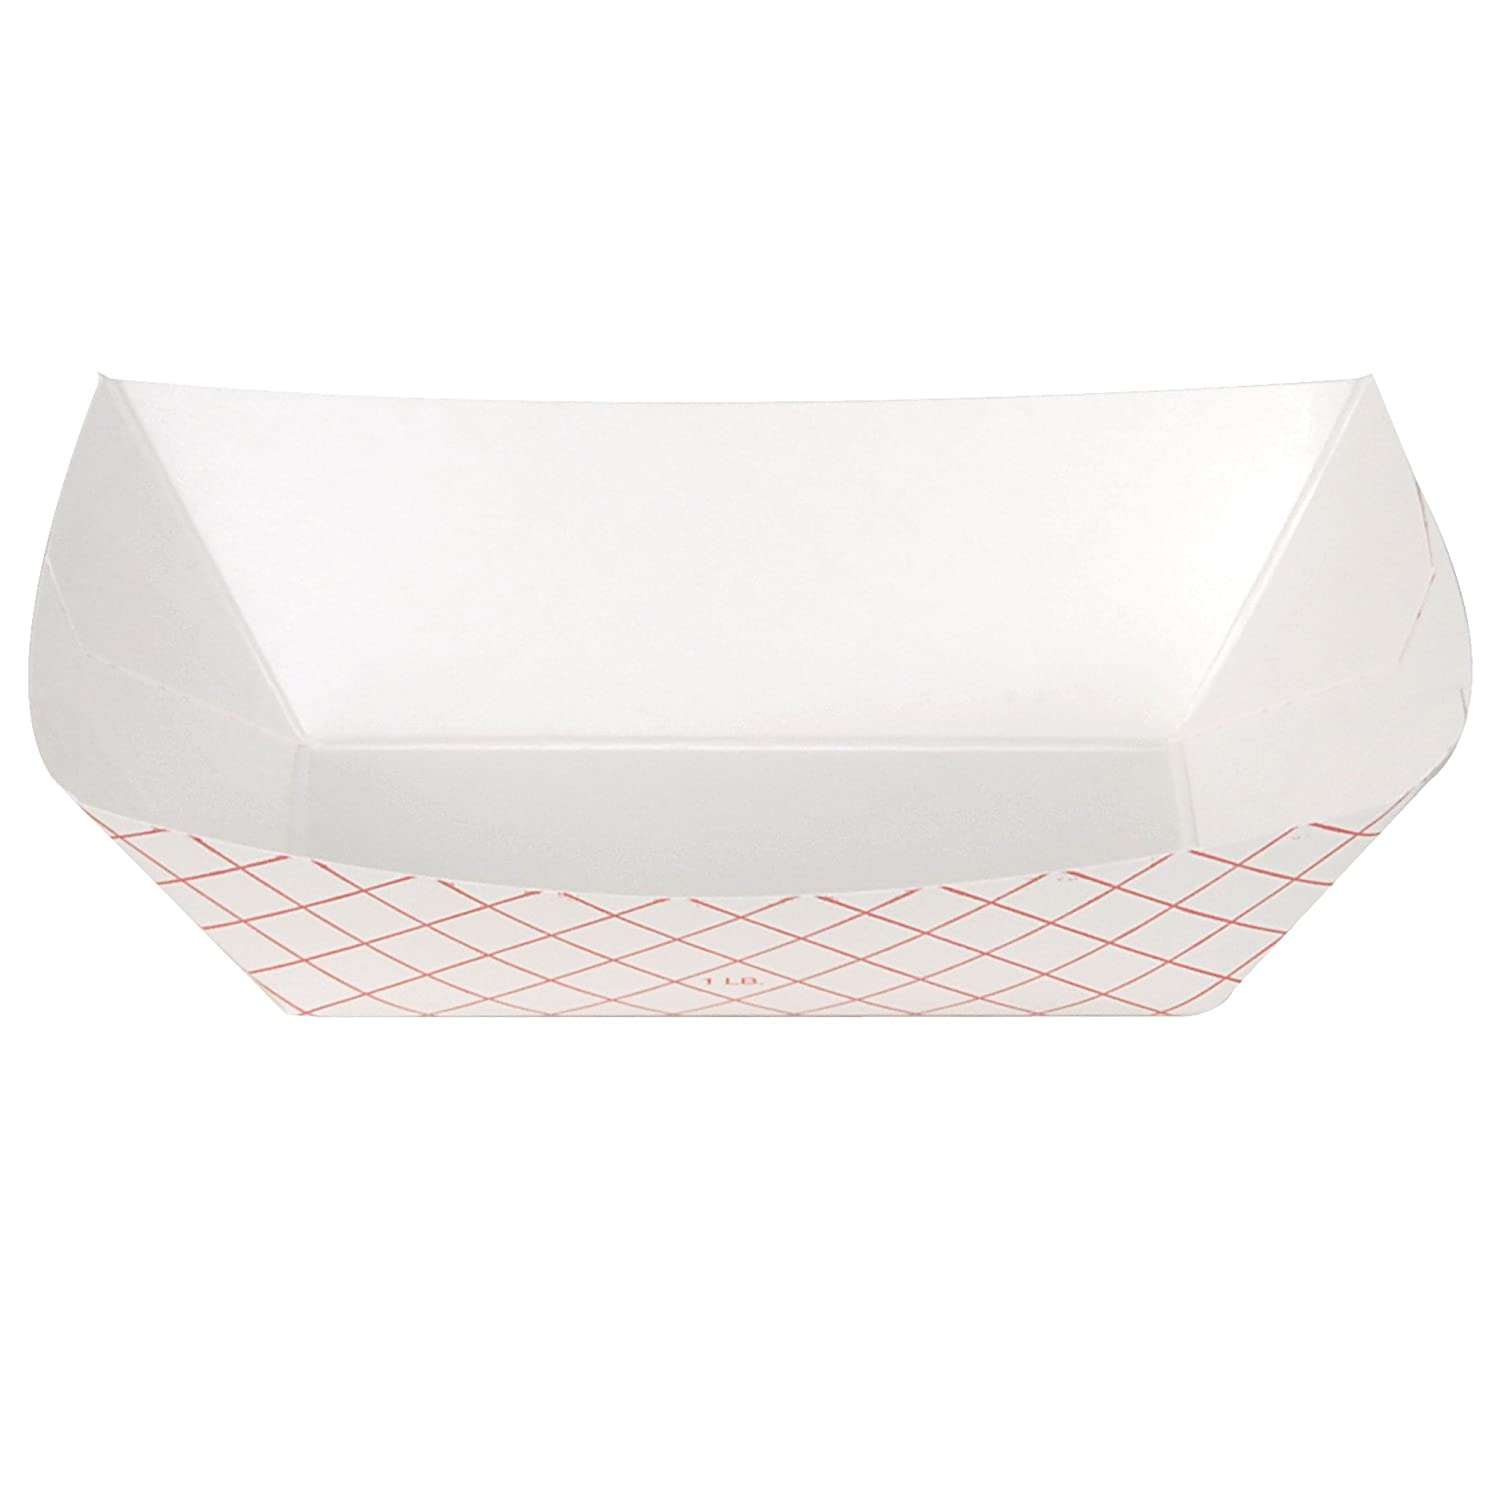 Dixie 1# Polycoated Paper Food Tray by GP PRO (Georgia-Pacific), Kant Leek, Red Plaid, 1lb, RP1008, 1,000 Count (250 Trays Per Pack, 4 Packs Per Case)